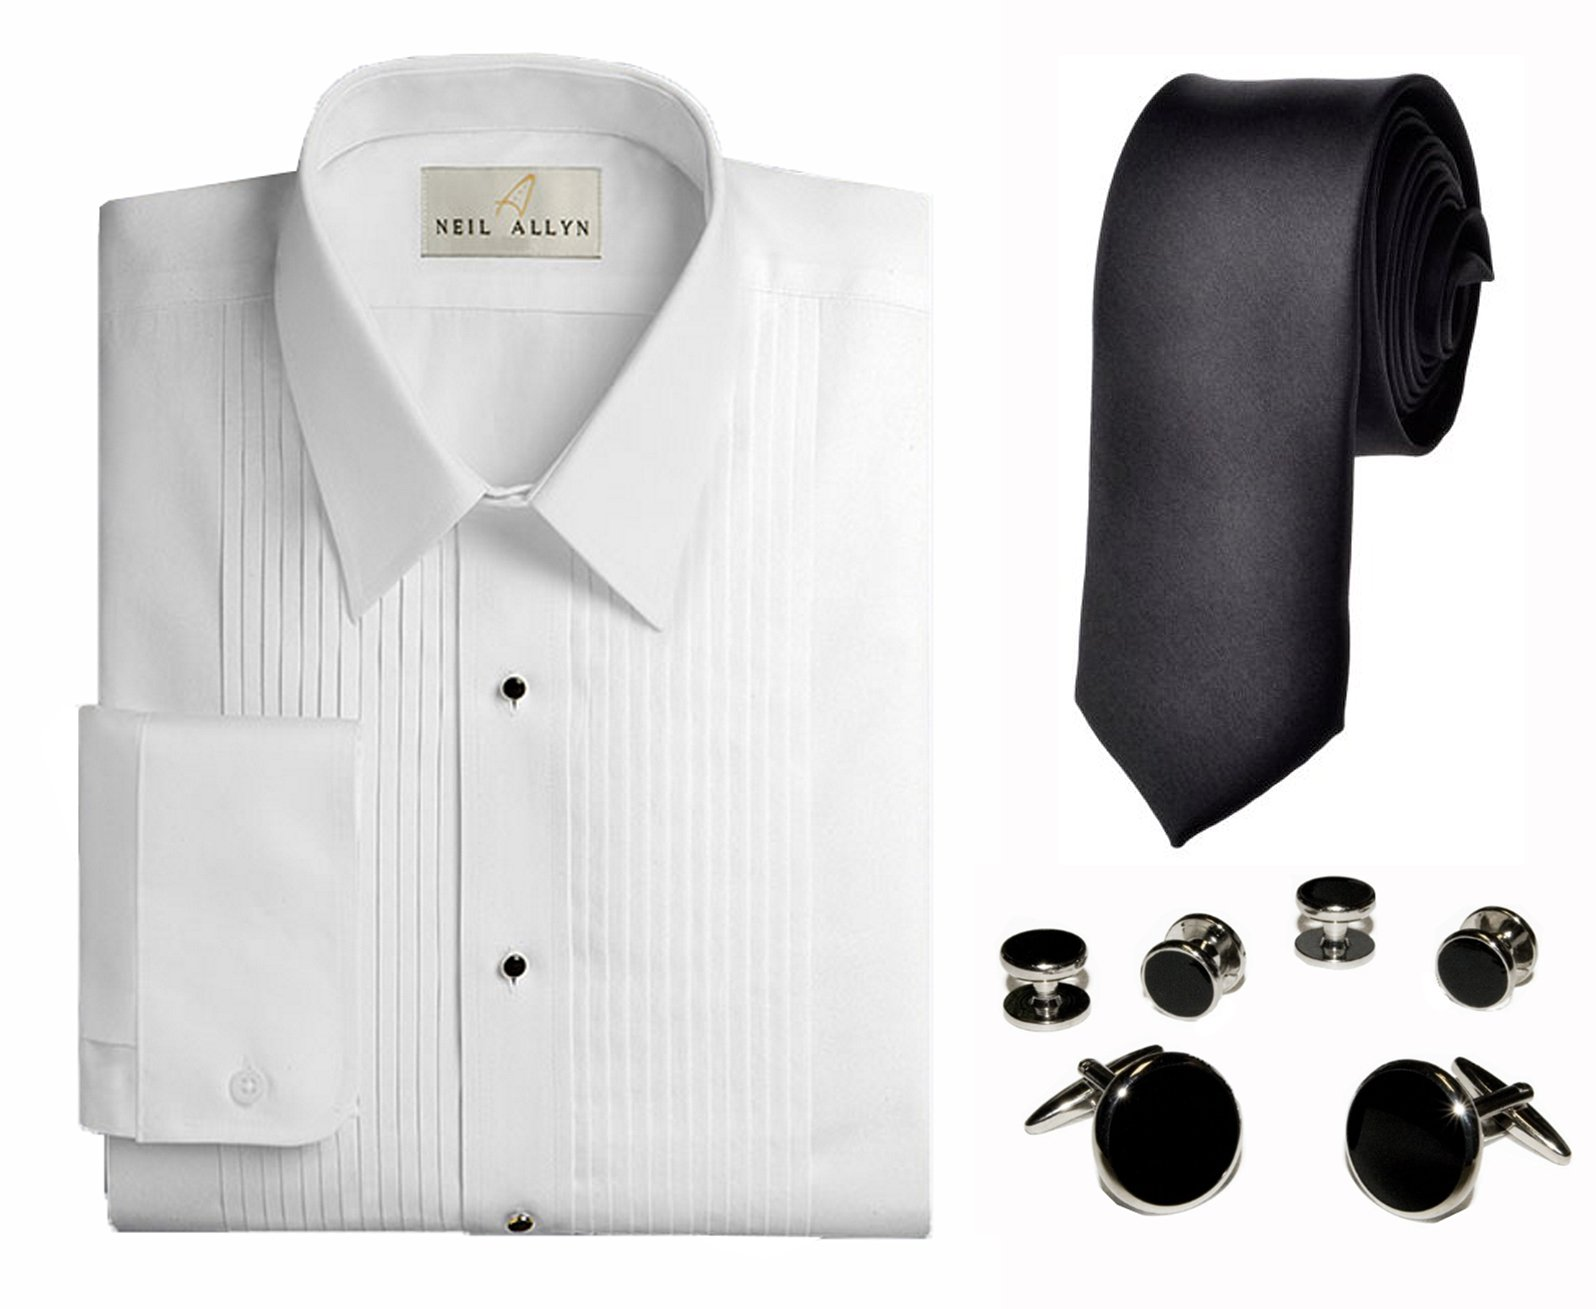 Neil Allyn Men's 1/4'' Pleat Tuxedo Shirt & Accessories 3-Piece Set, Lg 34/35